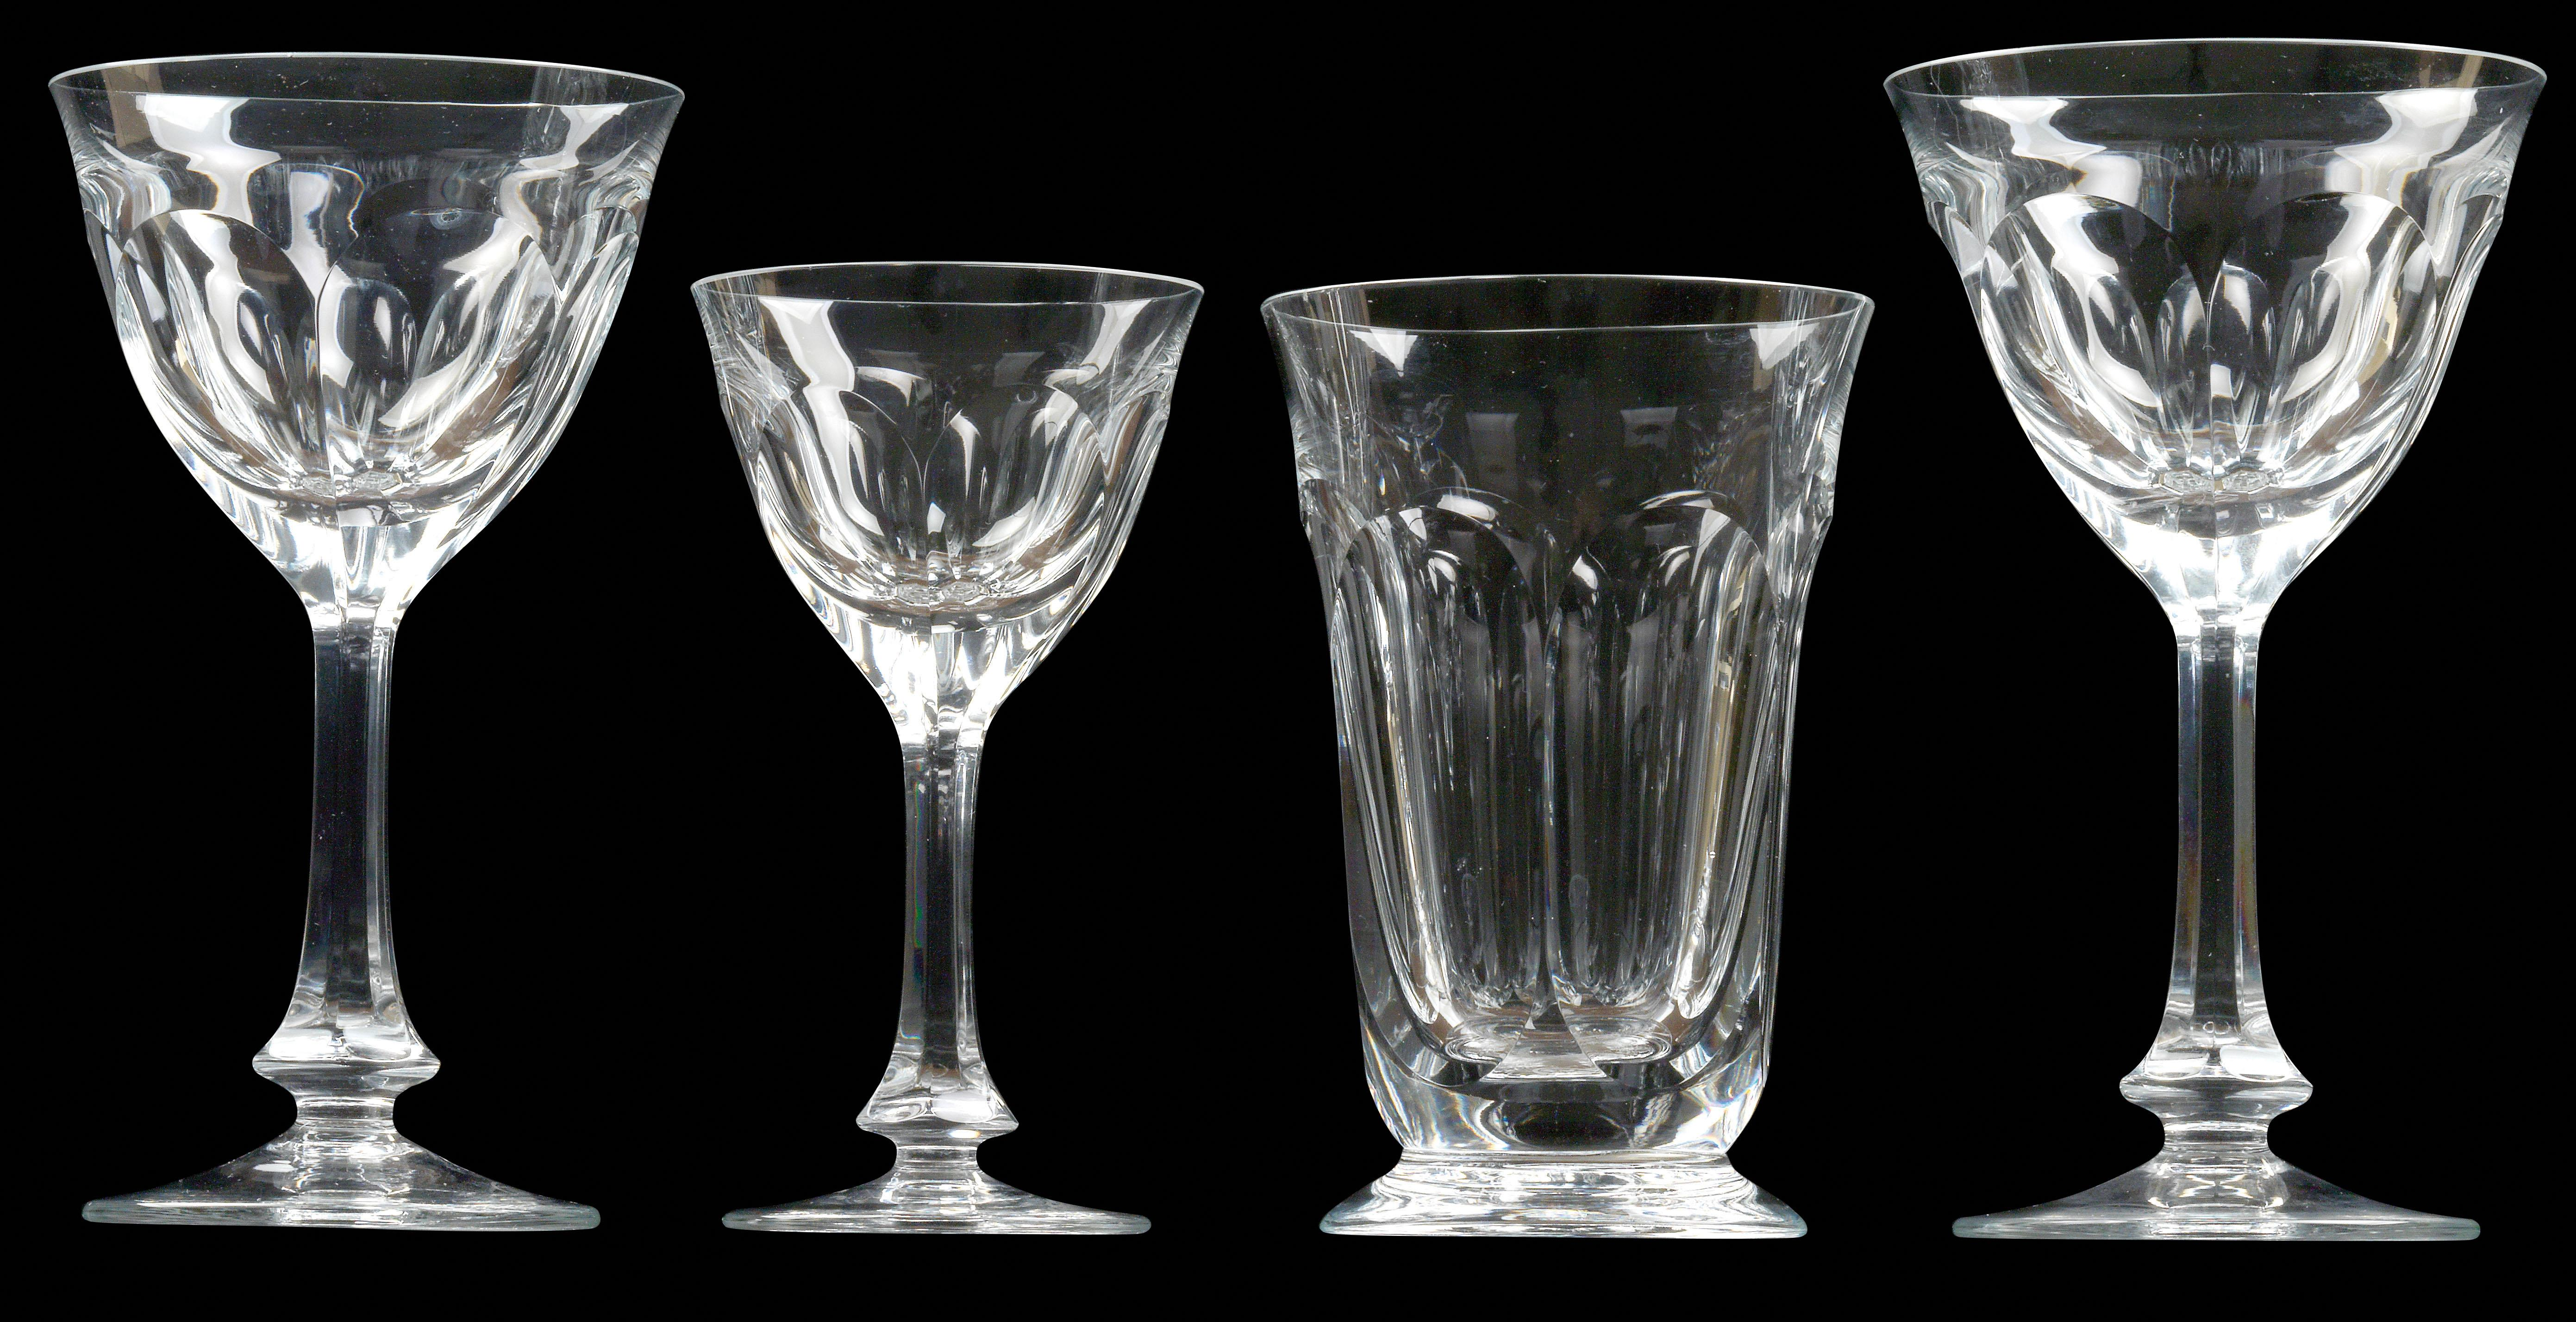 Moser glasses, - Glass and Porcelain 2018/06/12 - Realized